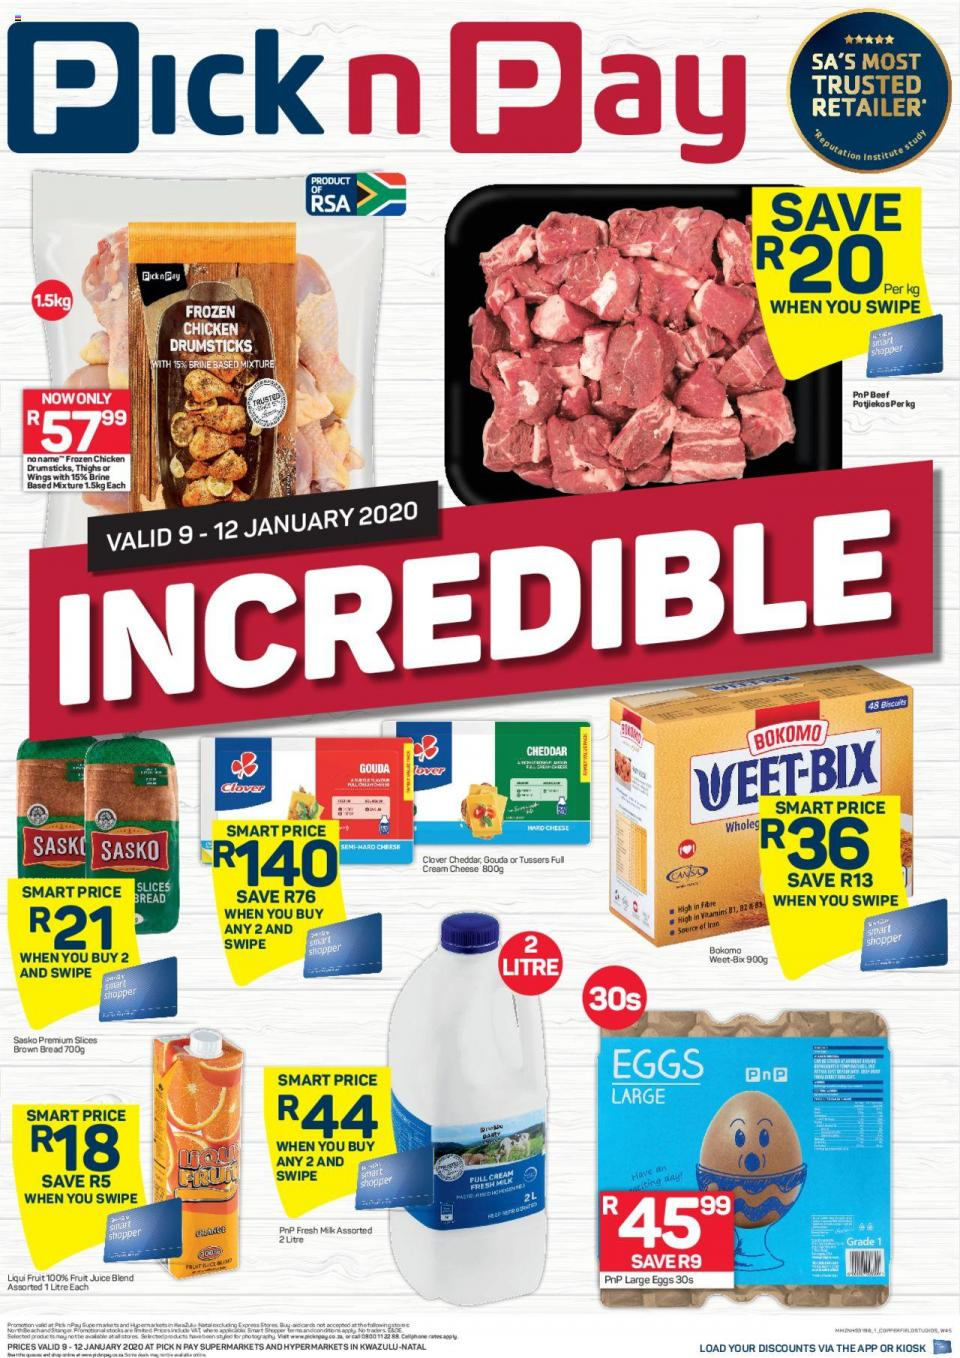 pick n pay specials this weekend 9 january 2020